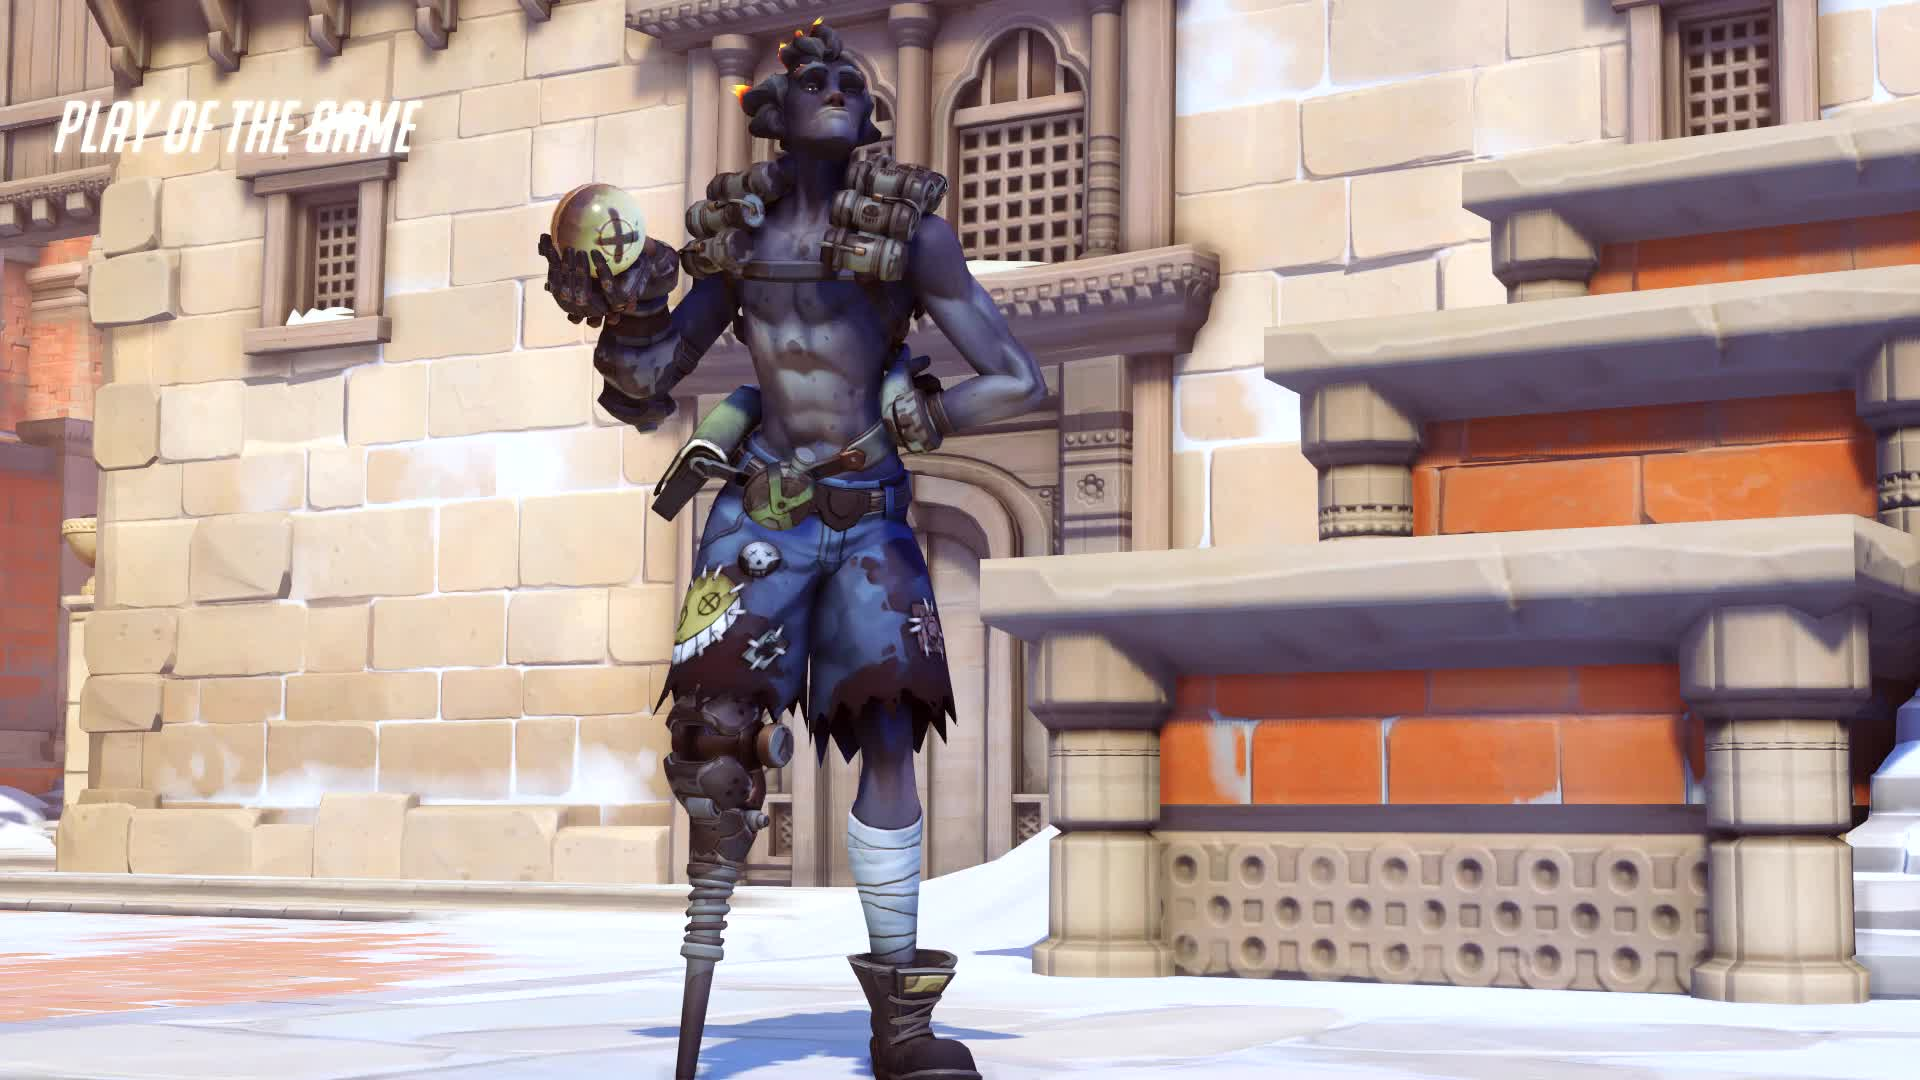 60fps, POTG, junkrat, overwatch, i must one-up kima GIFs